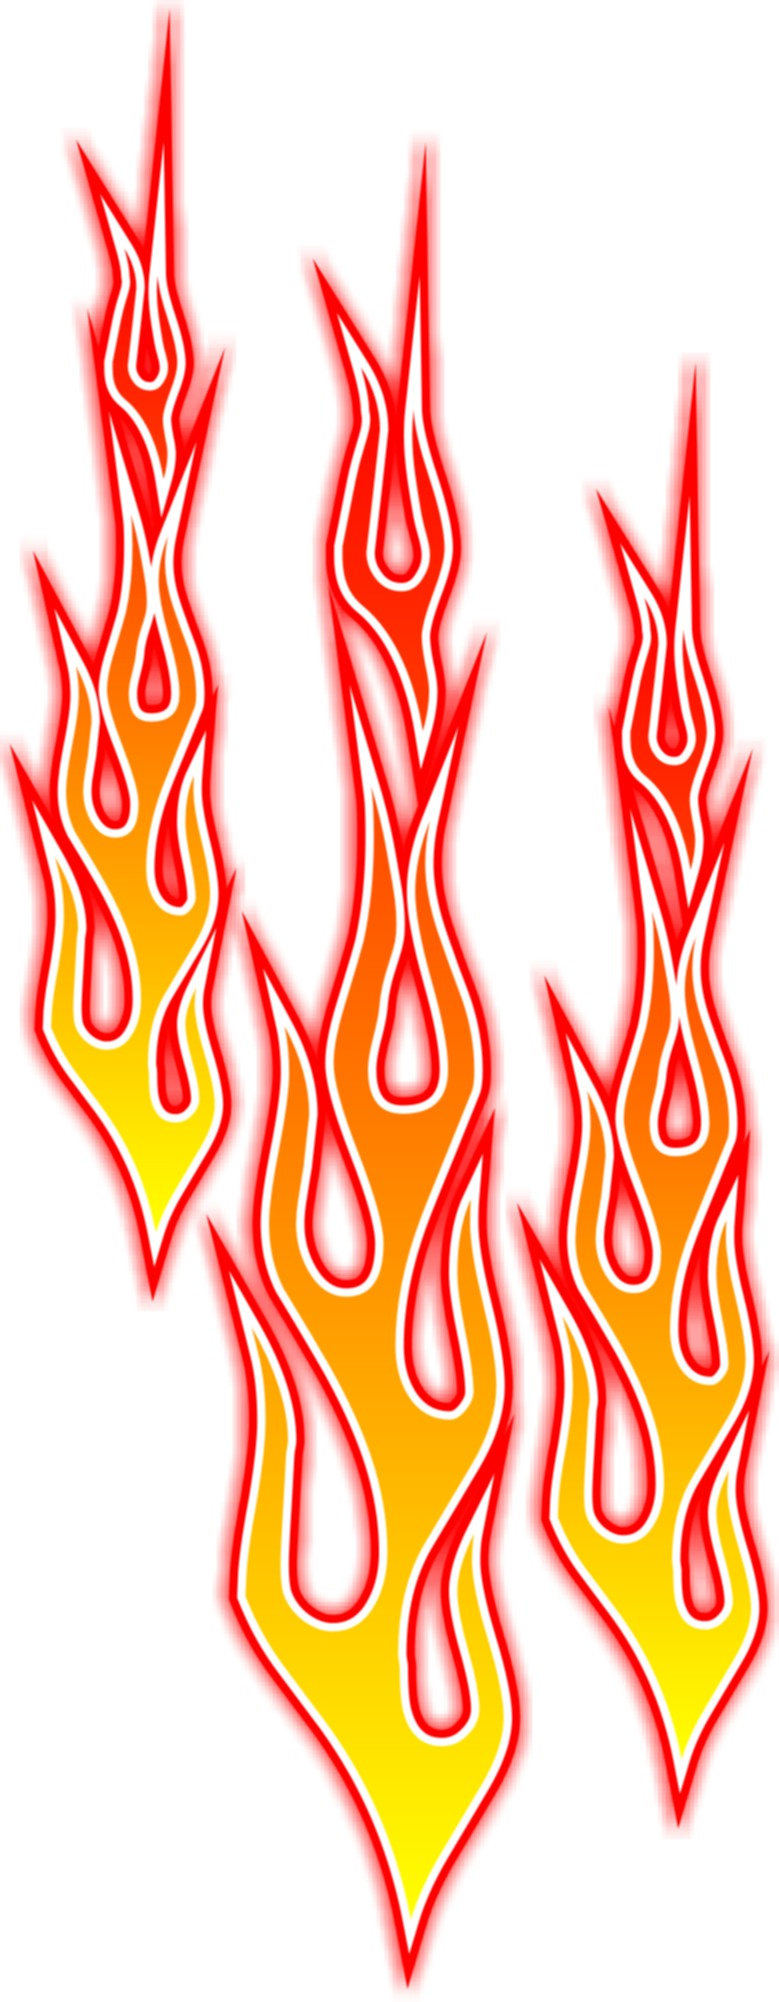 Flames svg #6, Download drawings